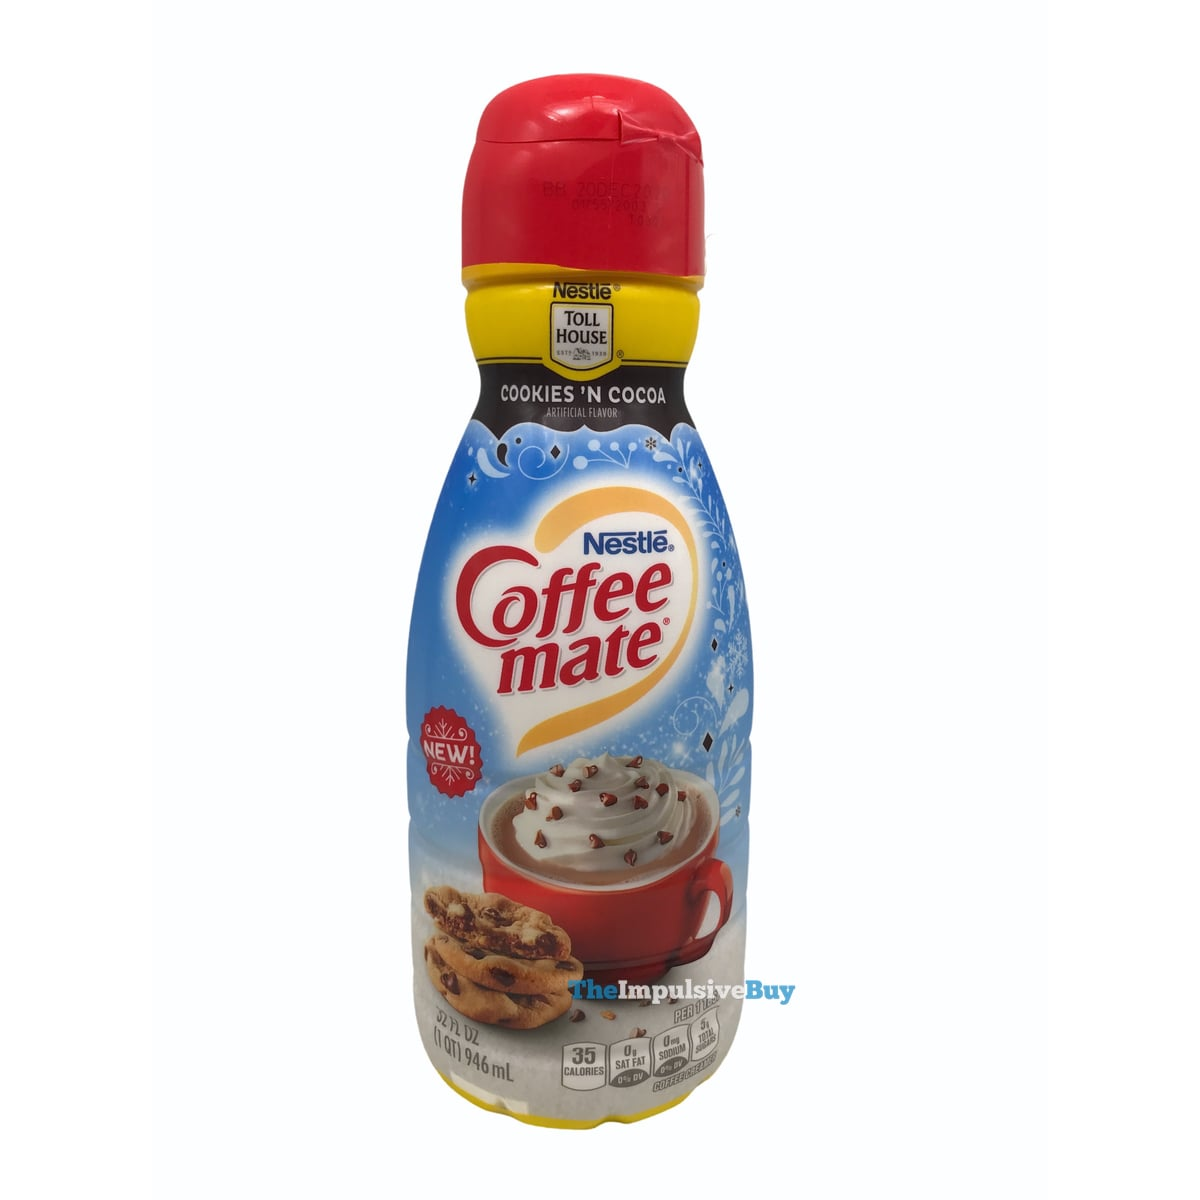 Review Nestle Coffee Mate New Fall 2020 Coffee Creamer Flavors The Impulsive Buy